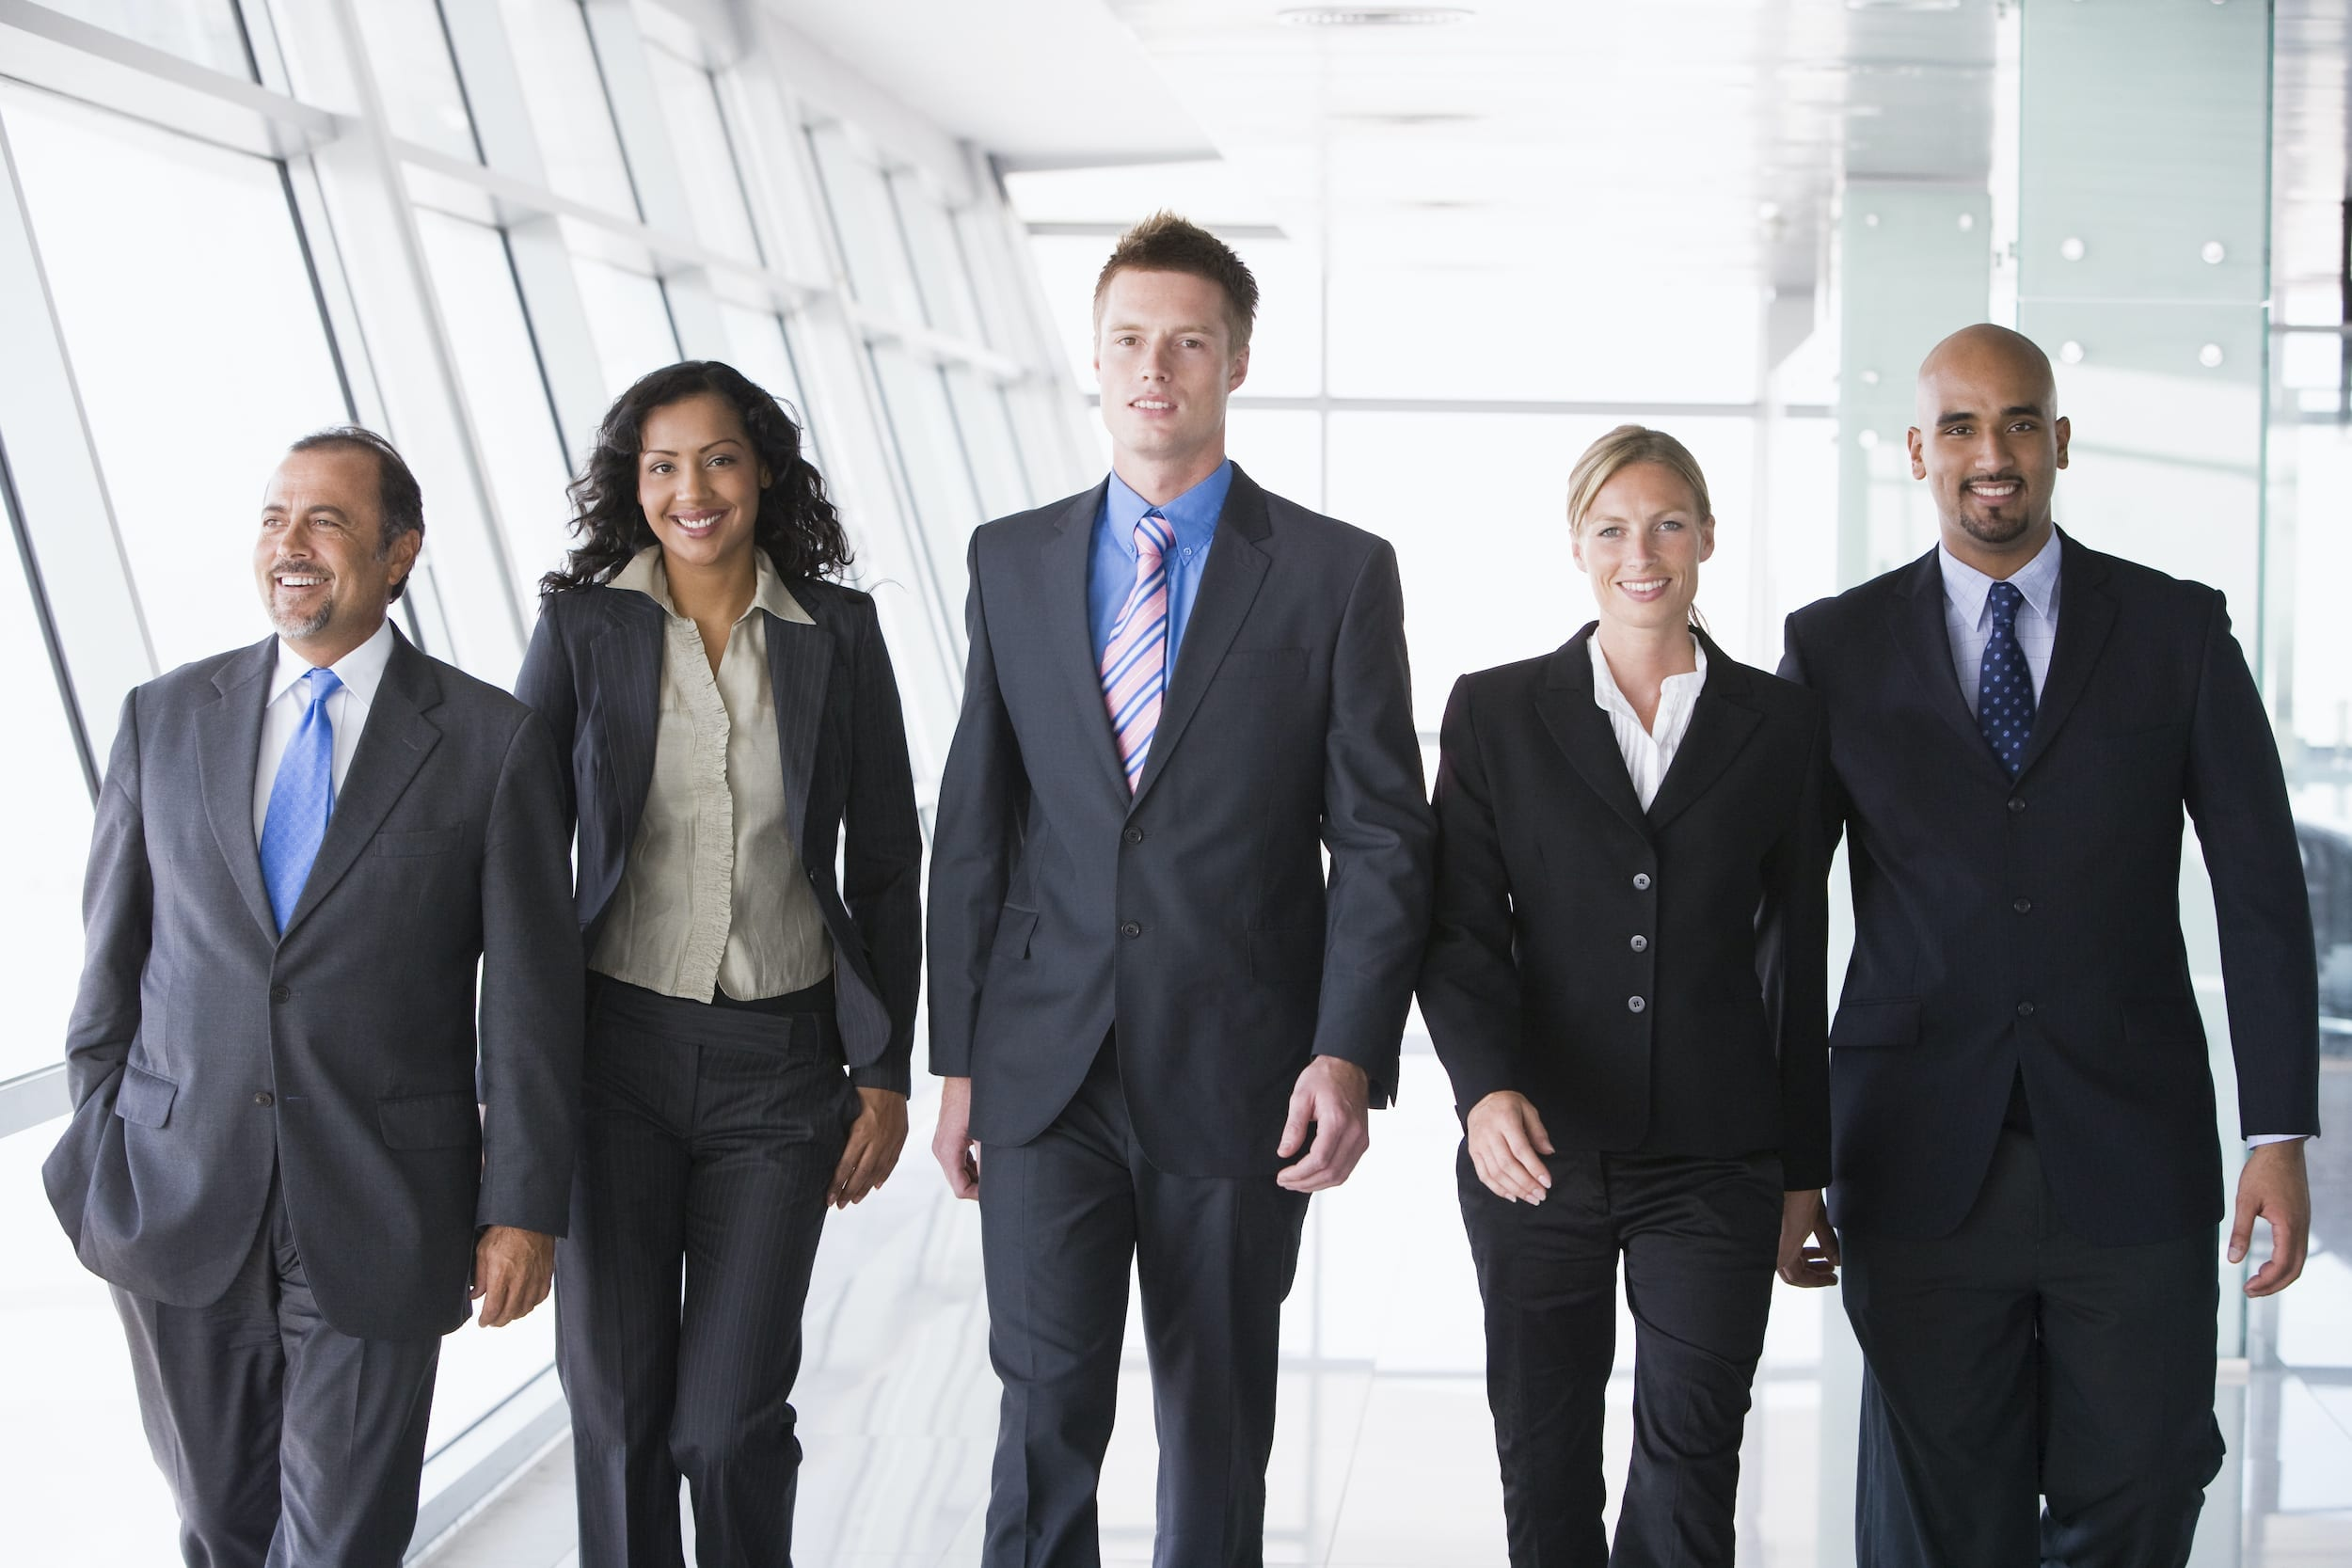 photo of 5 diverse adults in business attire